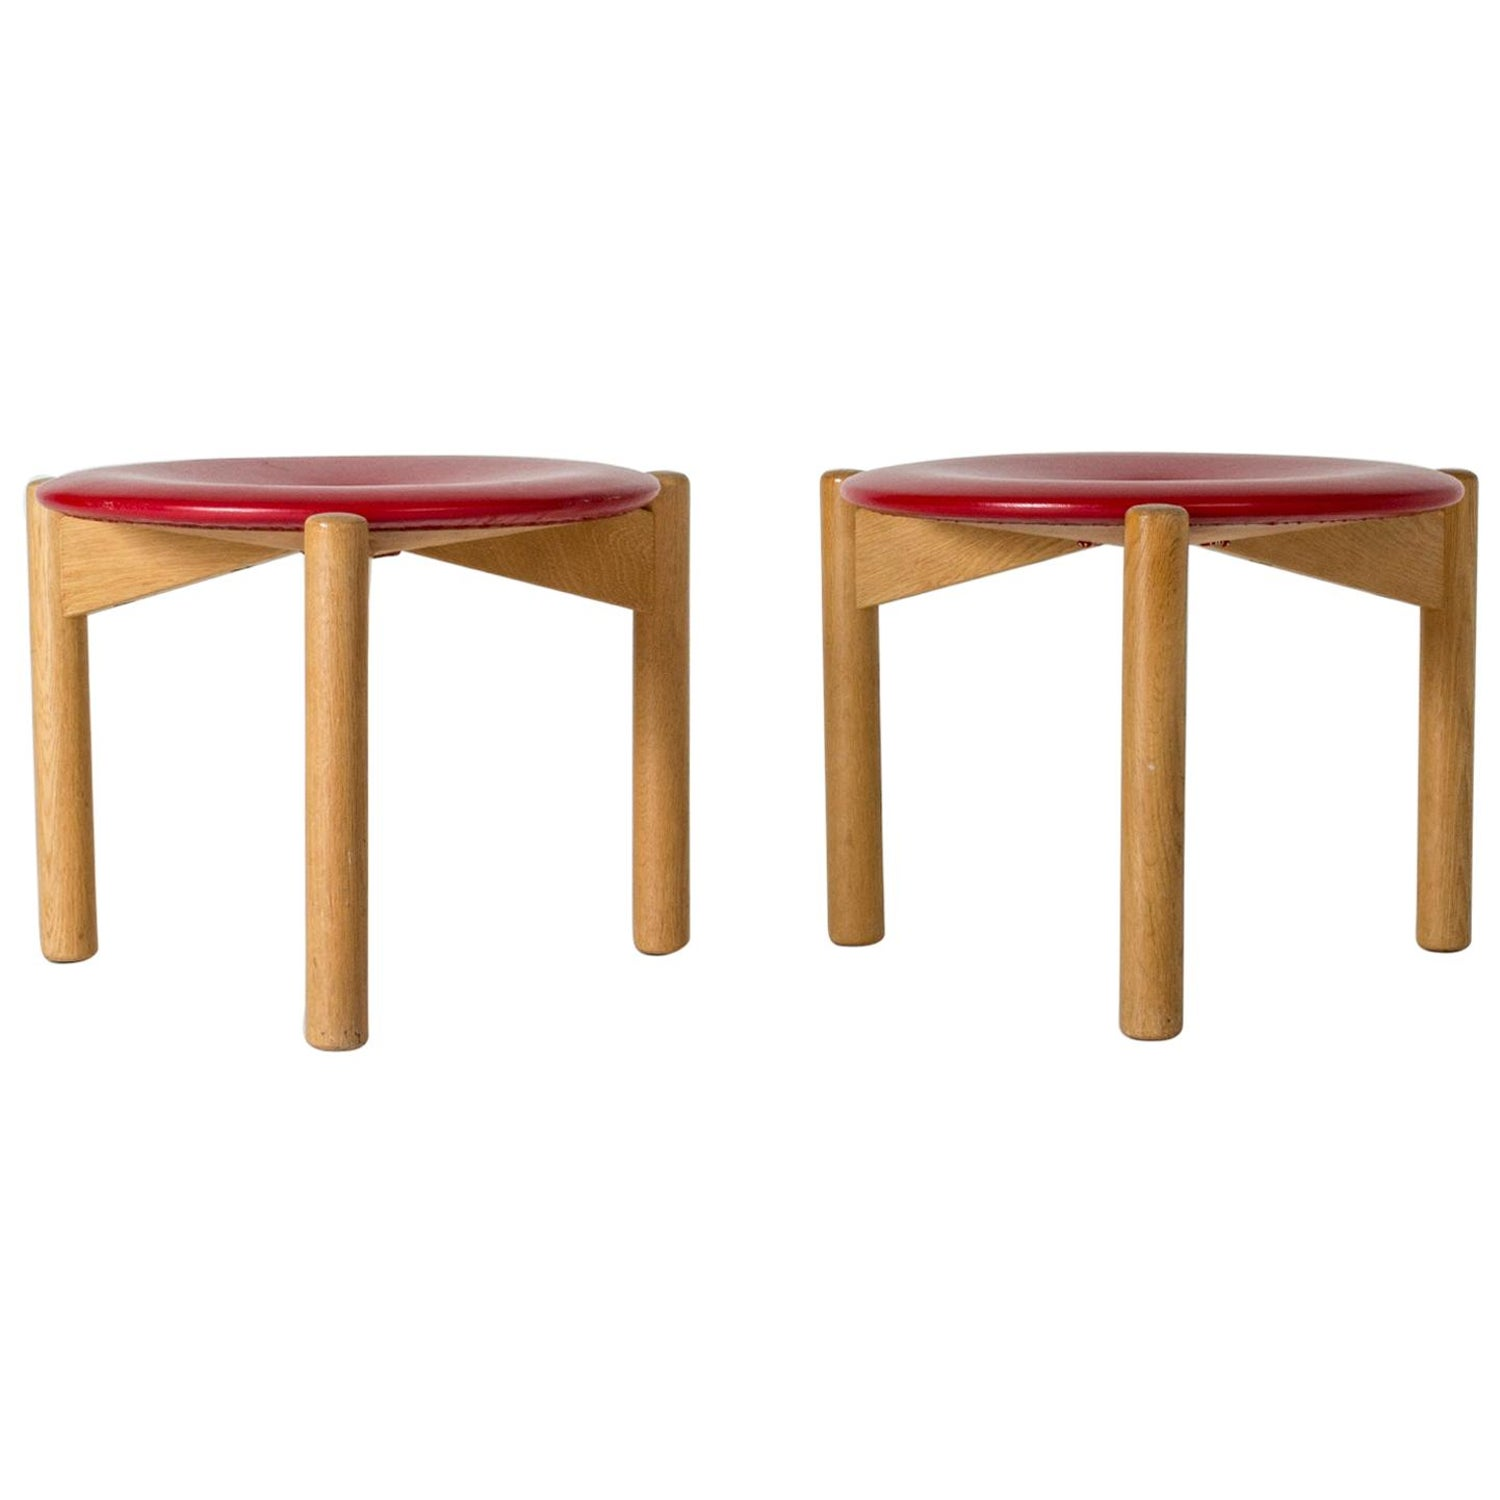 Enjoyable Pair Of Red Leather Stools By Uno And Osten Kristiansson Inzonedesignstudio Interior Chair Design Inzonedesignstudiocom